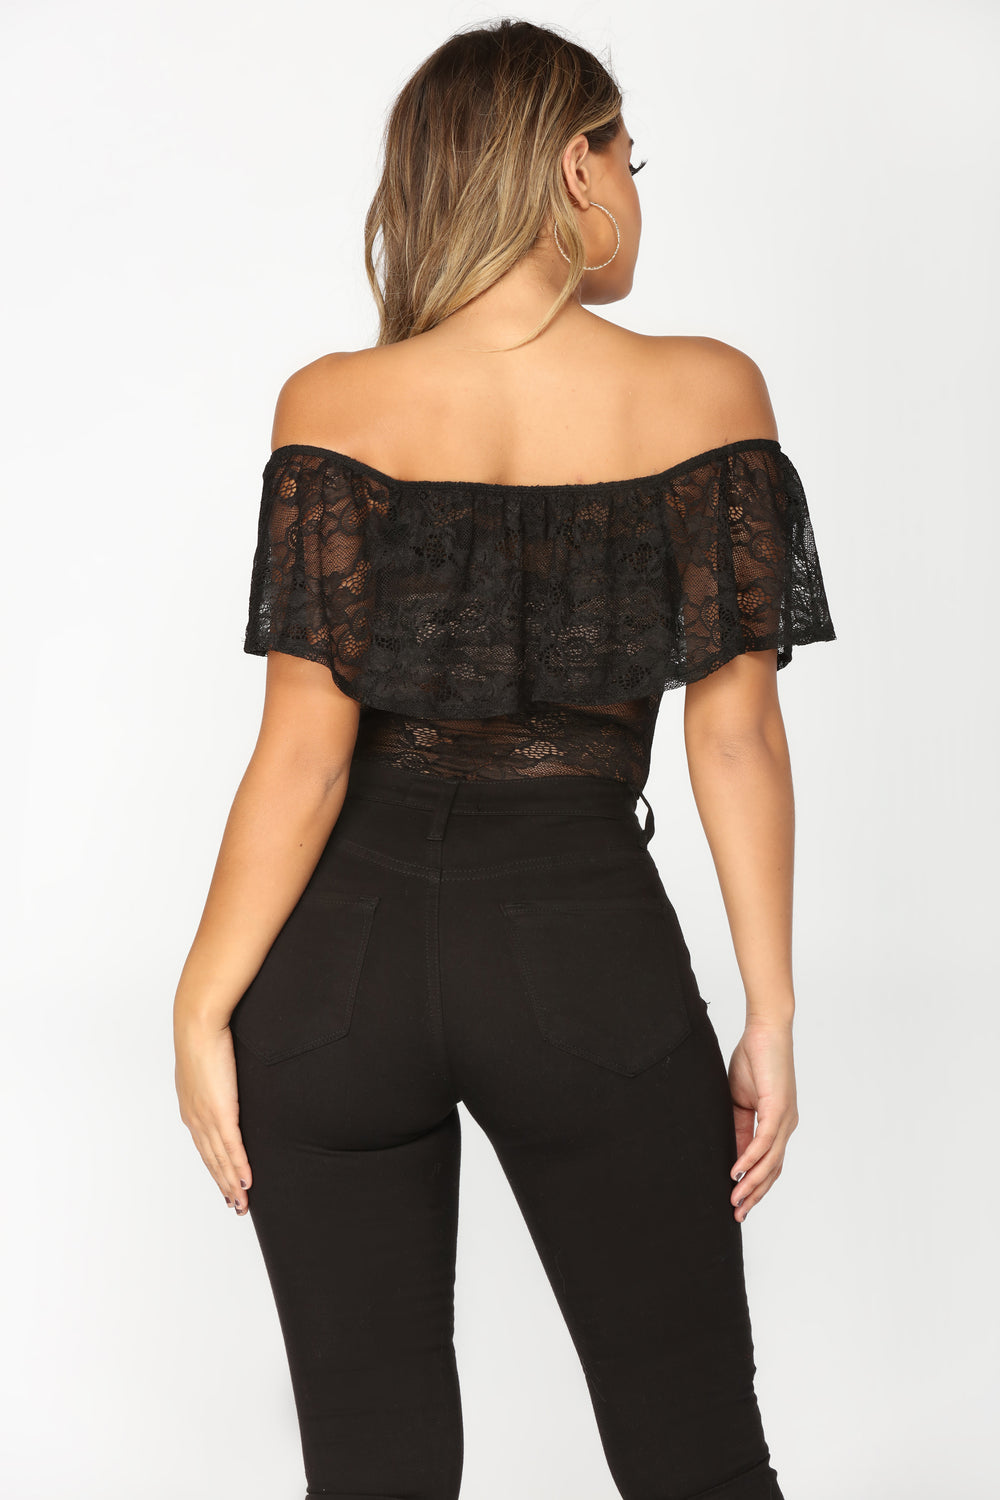 Let There Be Love Bodysuit - Black